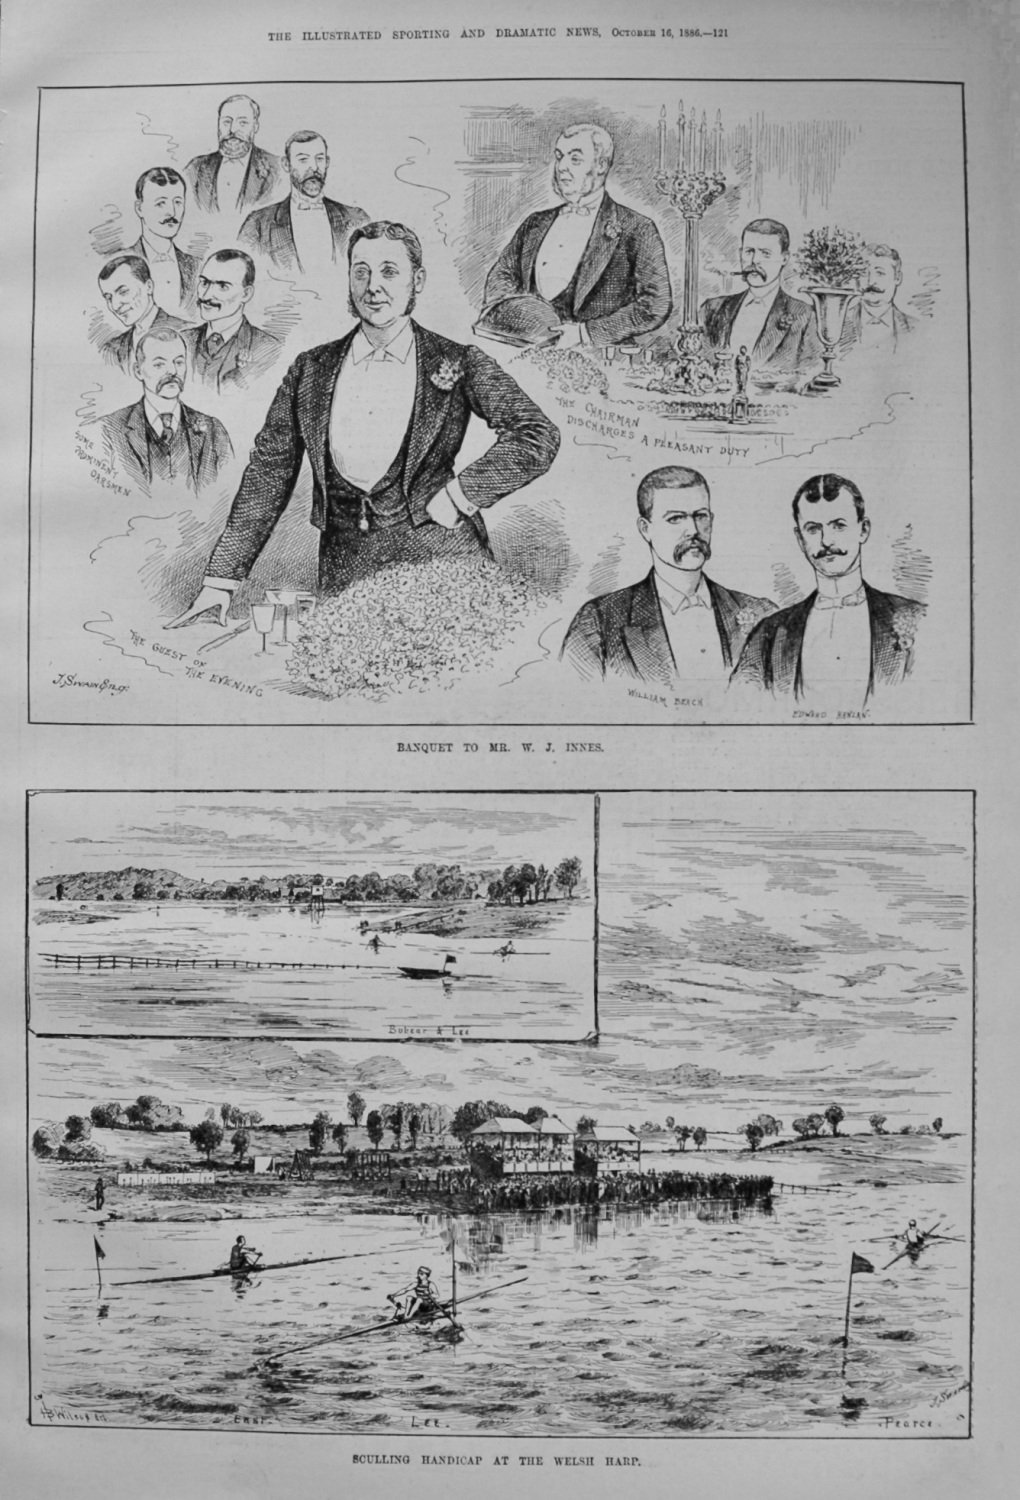 Banquet to Mr. W. J. Innes. & Sculling Handicap at the Welsh Harp. 1886